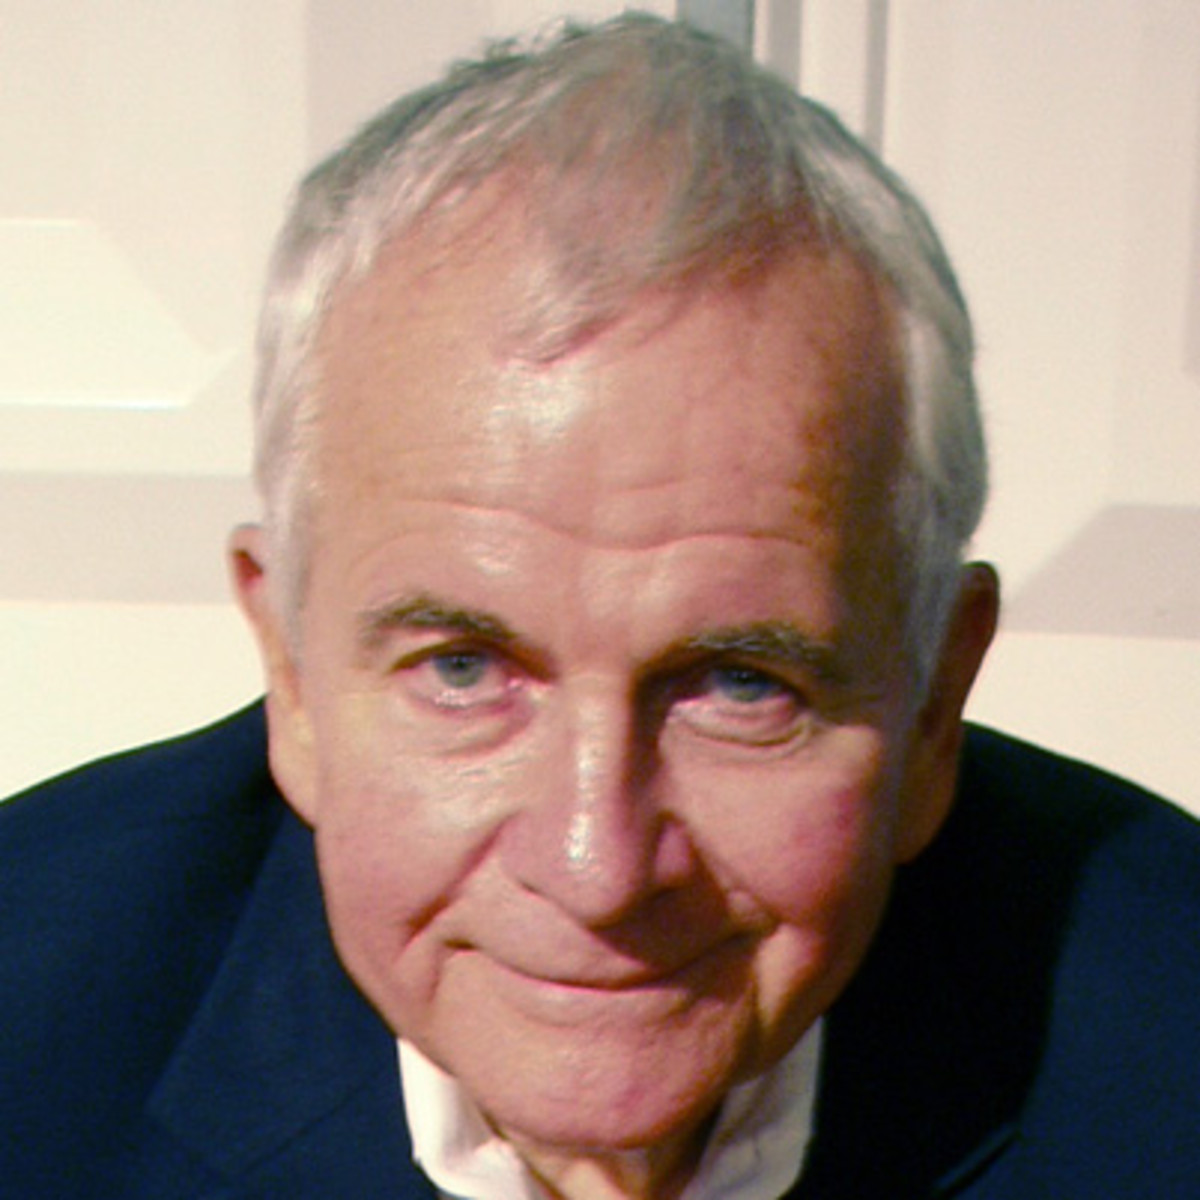 Ian Holm (born 1931) nudes (29 photo), Sexy, Sideboobs, Feet, cleavage 2019